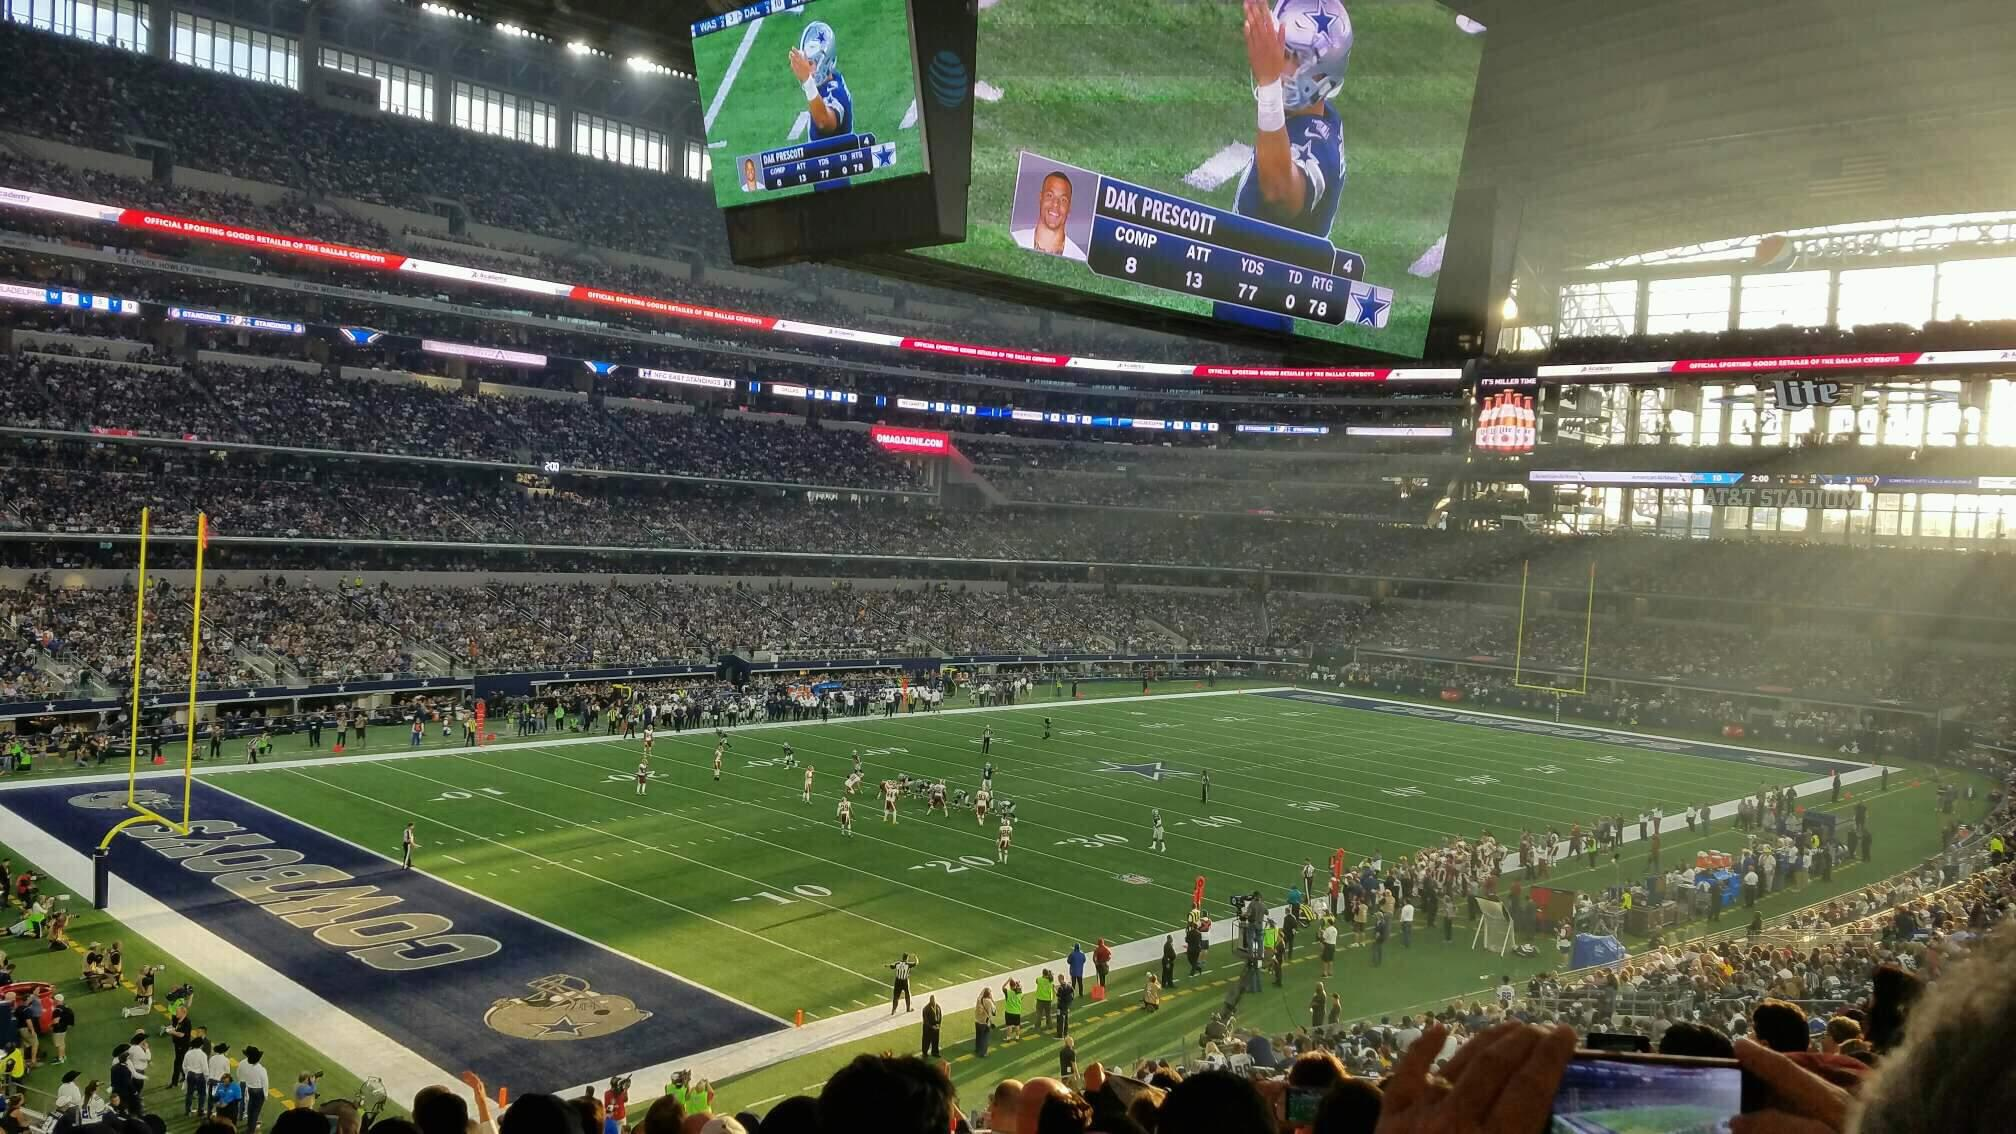 AT&T Stadium Section 242 Row 11 Seat 14